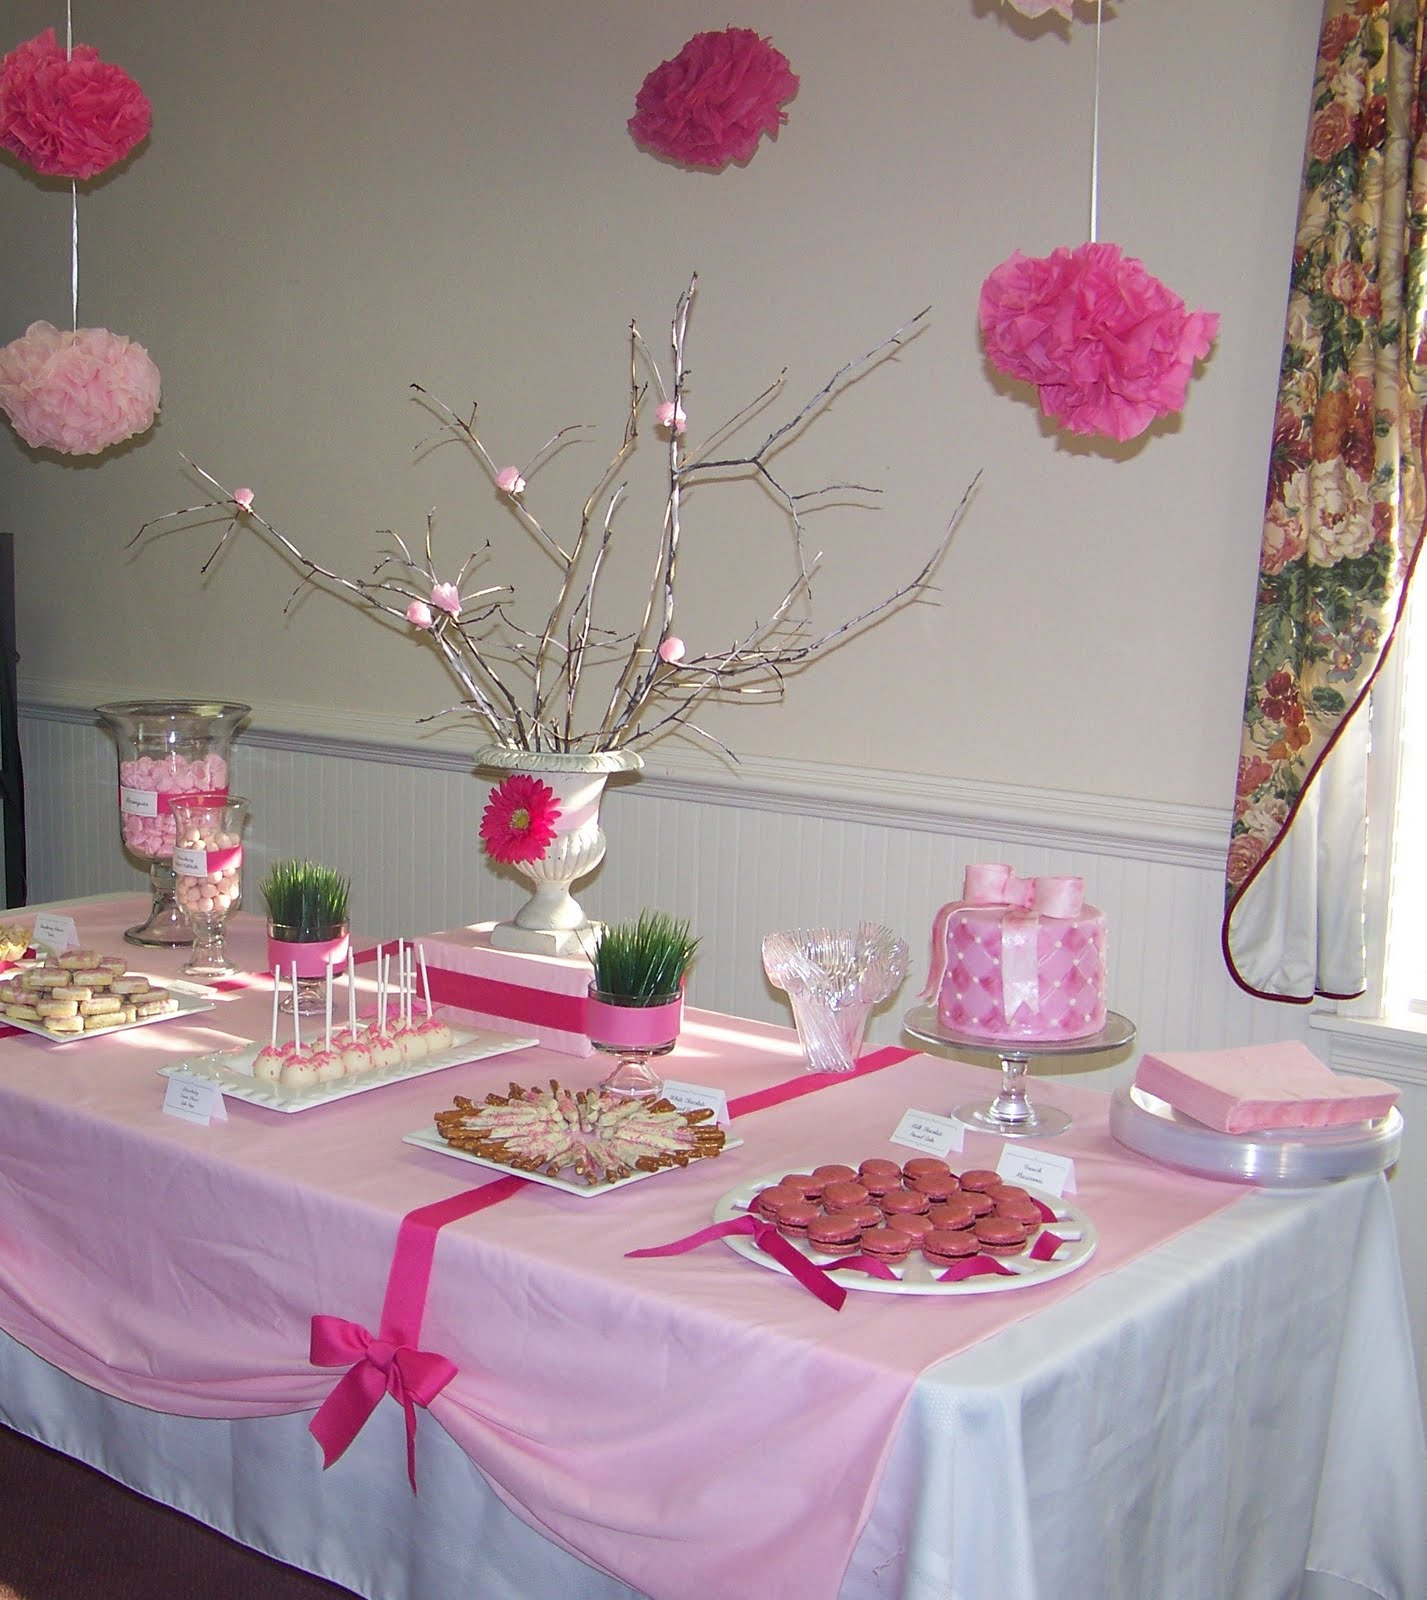 Simply Celebrate: Baby Shower Goodies